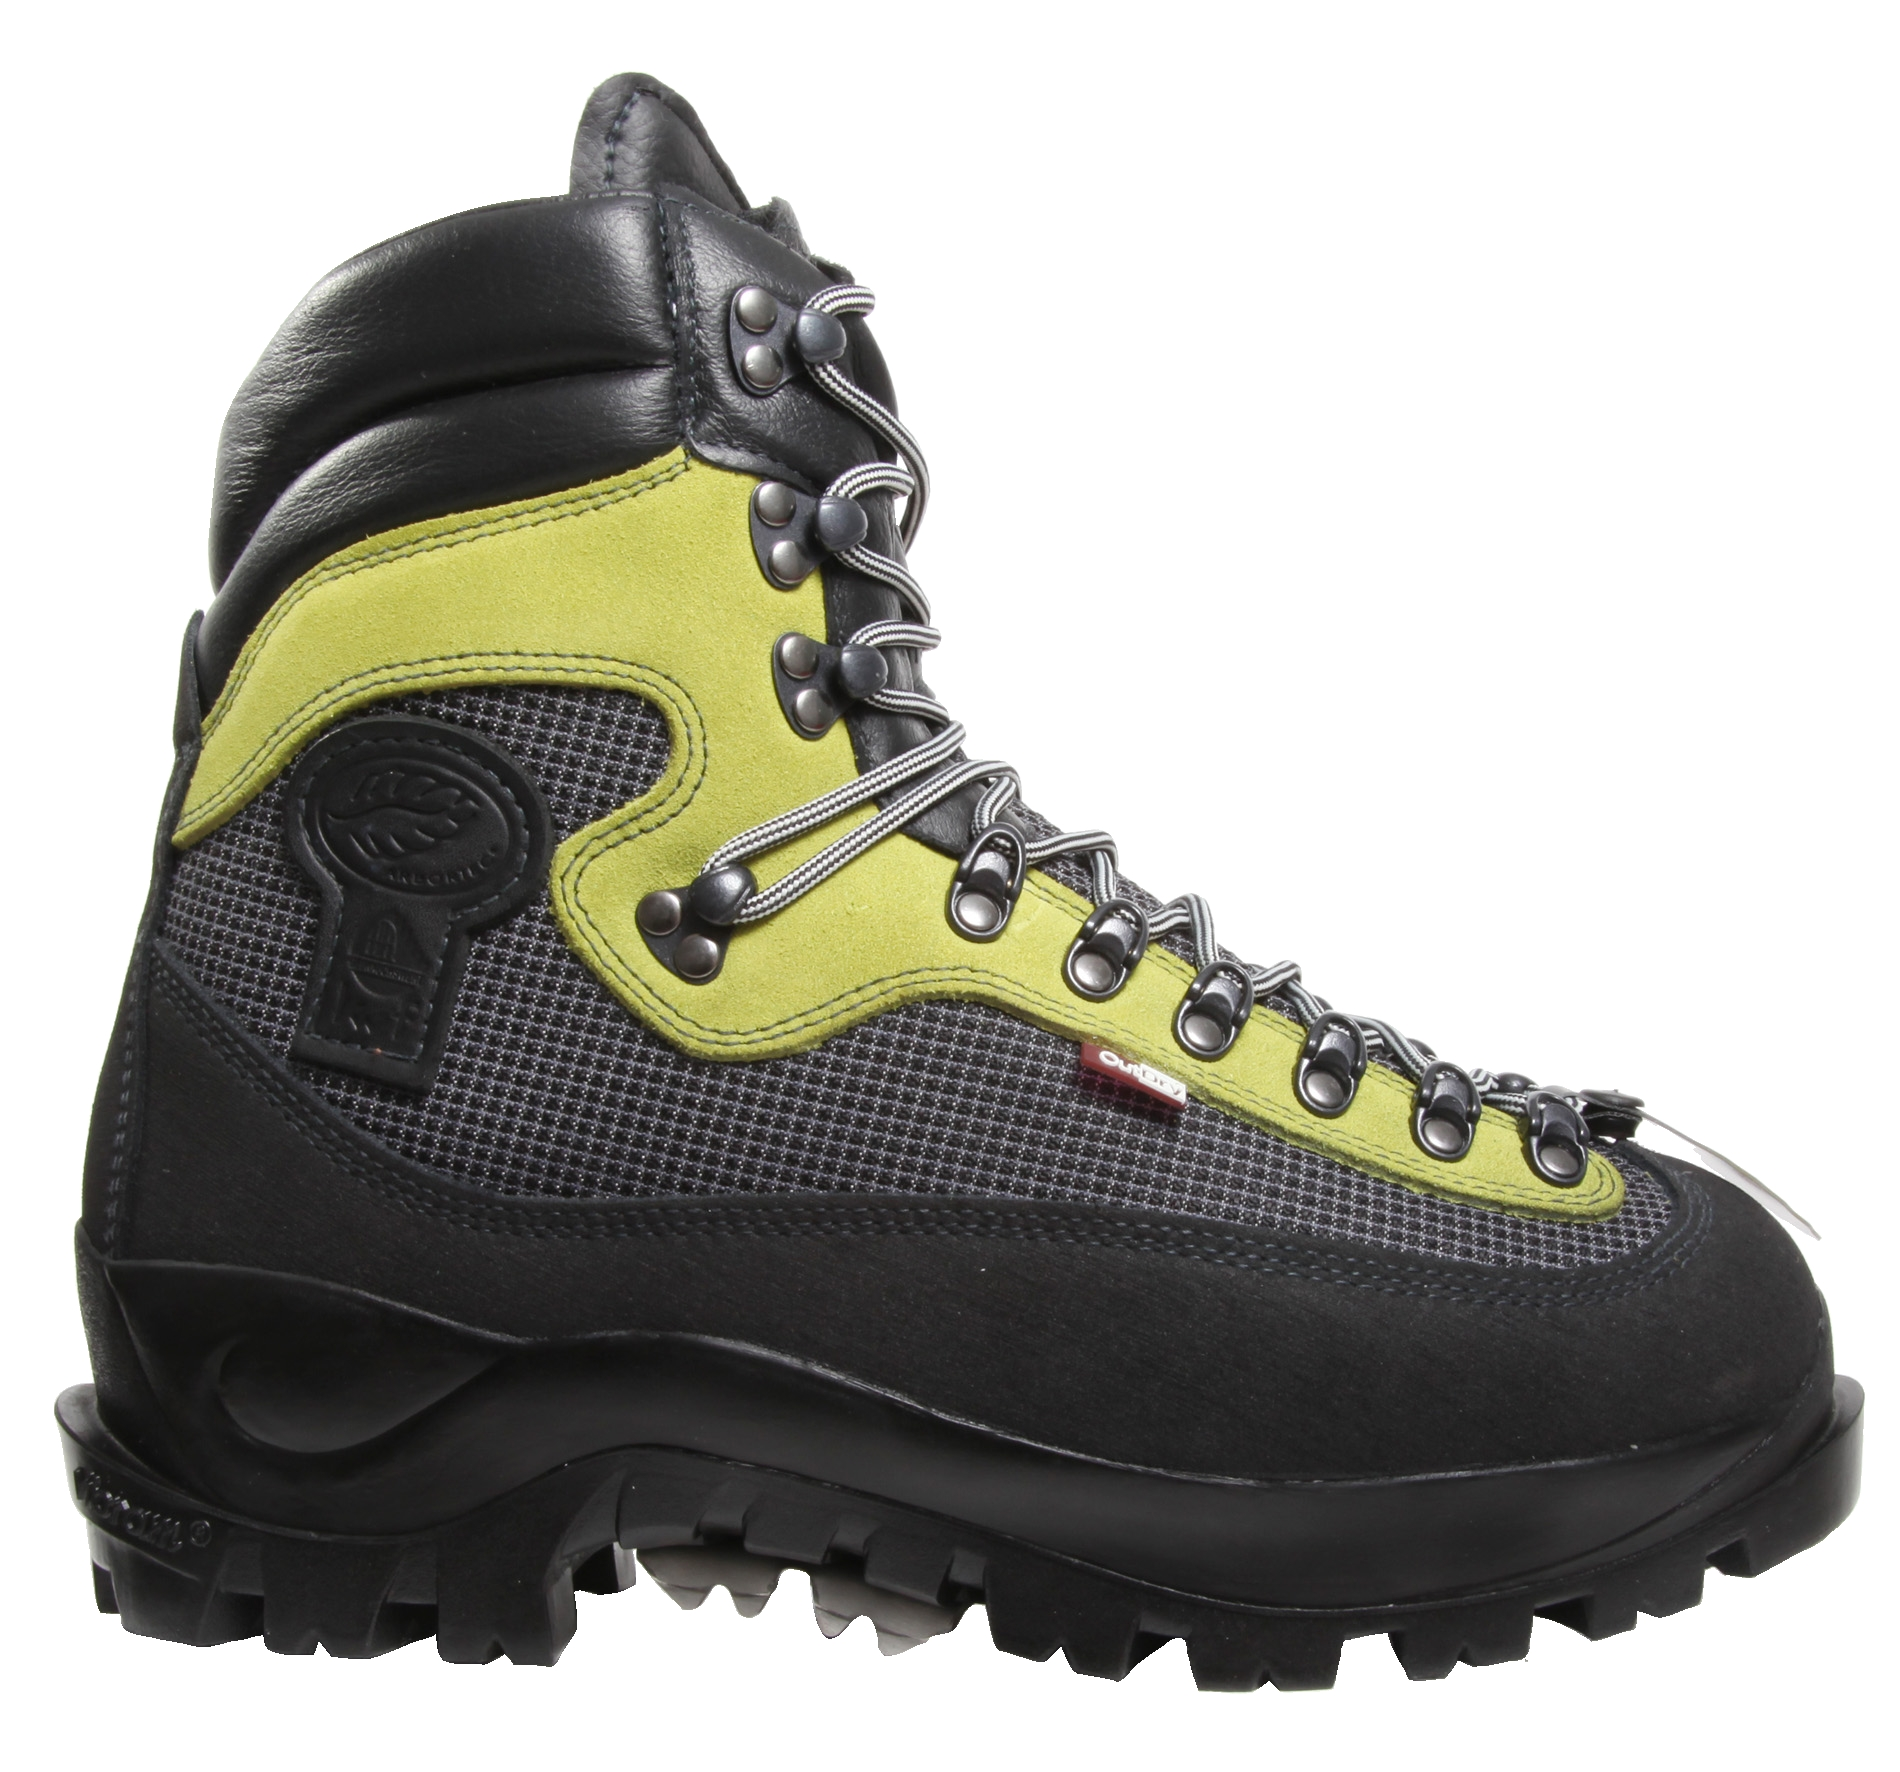 Arbortec Arborist Laces For Scafell /& XER Boots